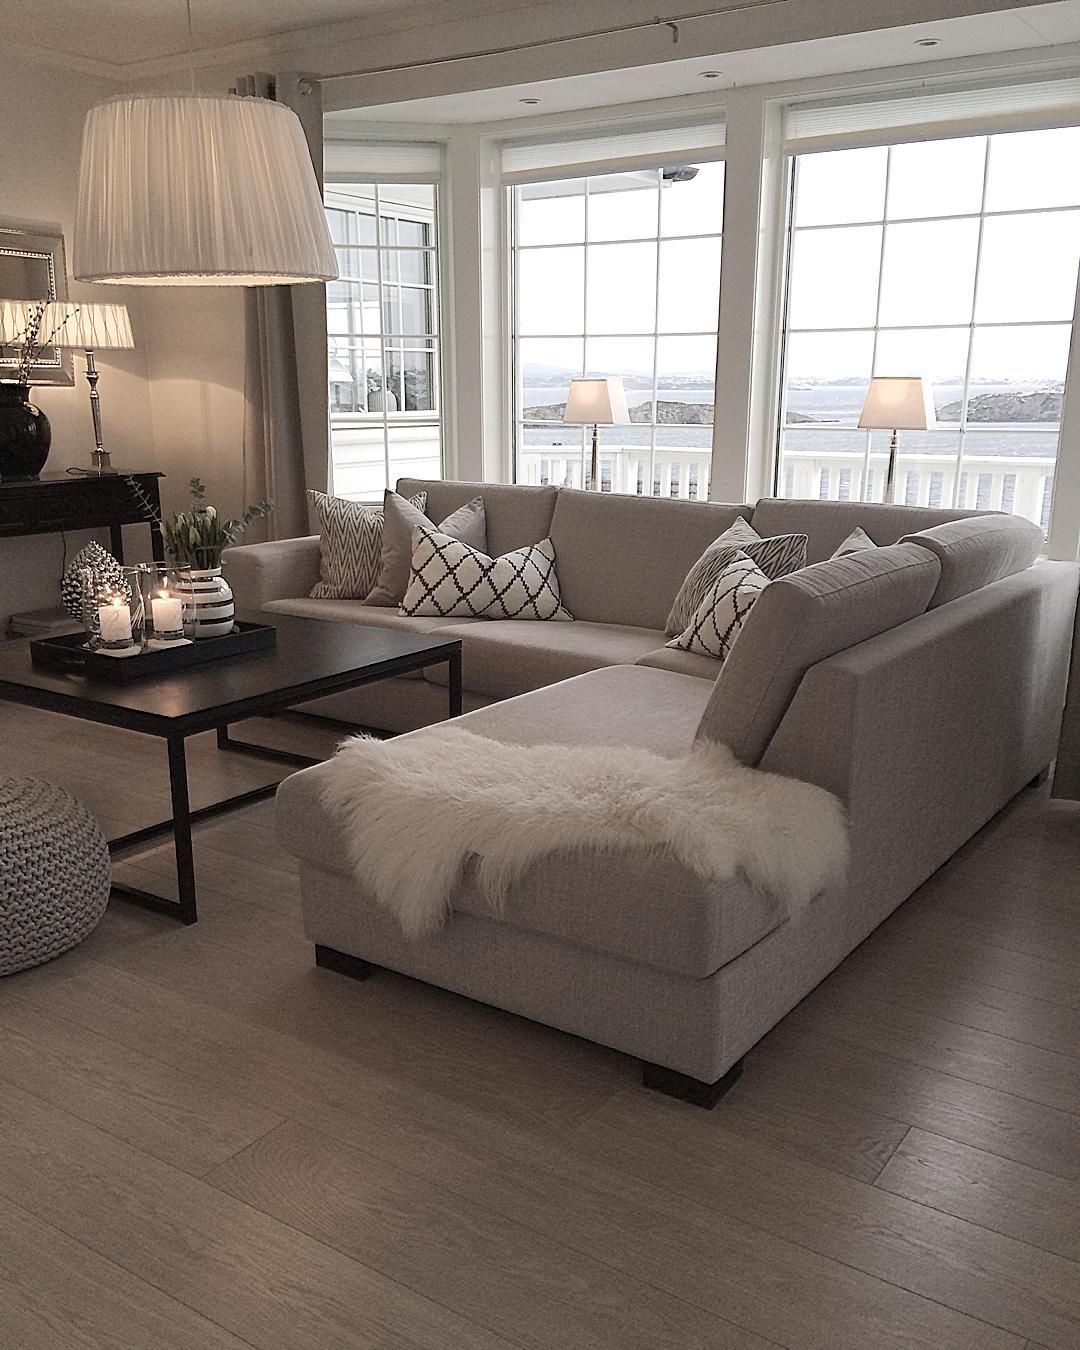 Pin by yaima amor on ideas in home decor living room decor room